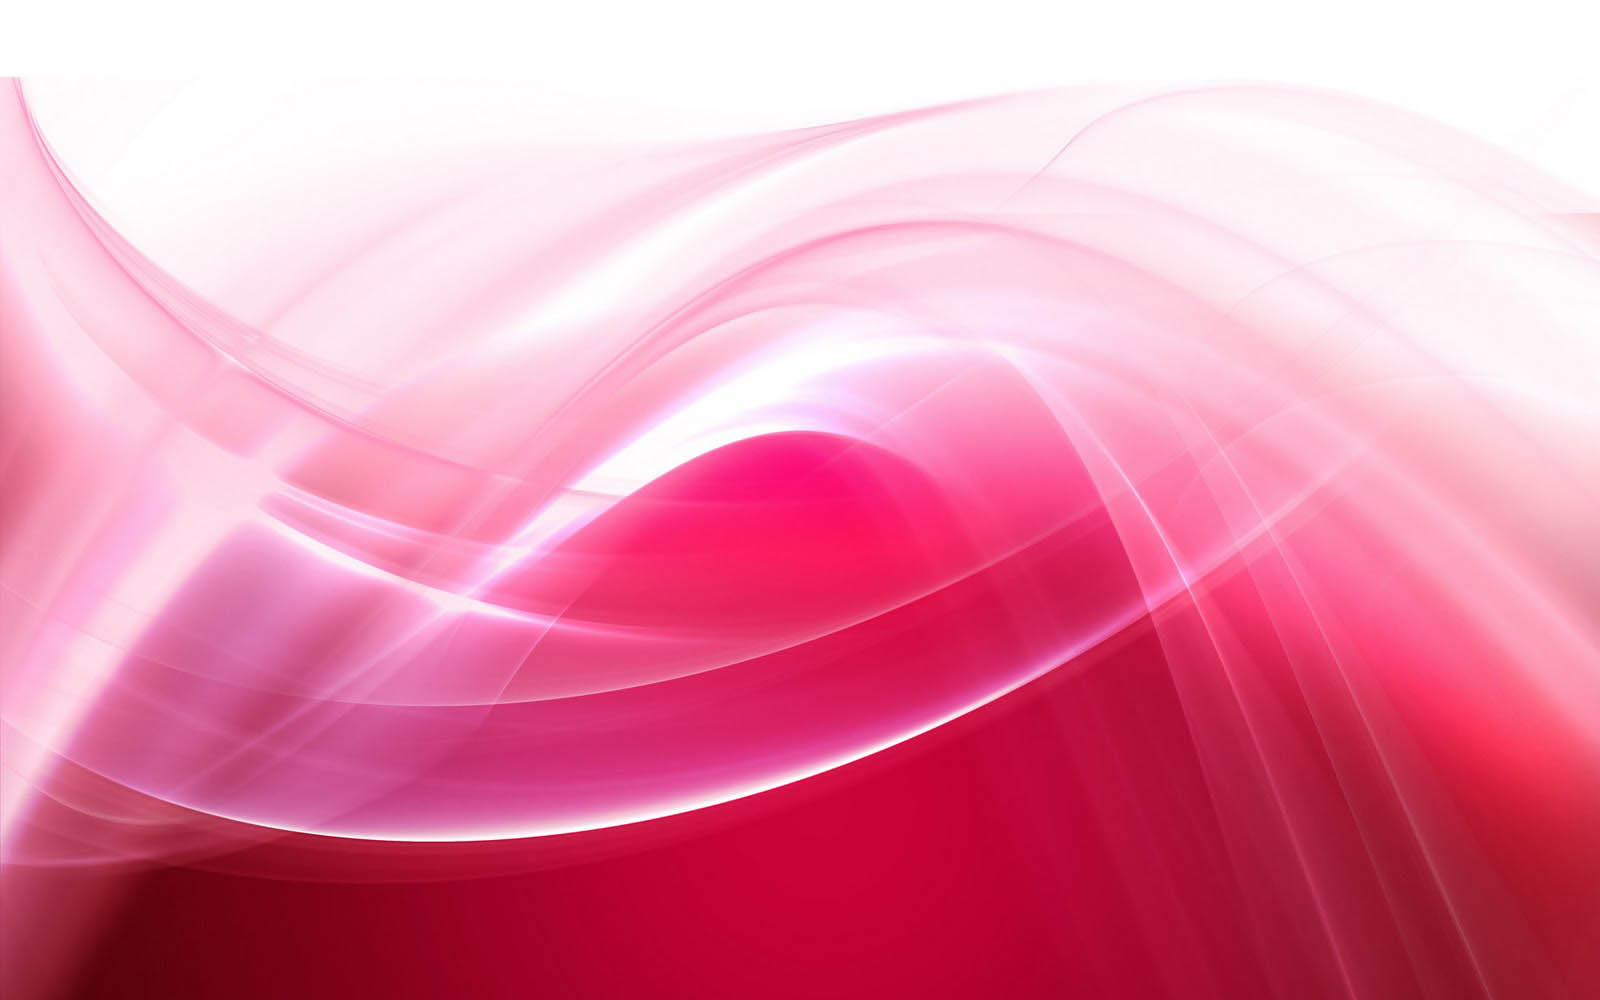 Gallery Mangklex HOT 2013 Popular Abstract Pink Wallpapers 1600x1000